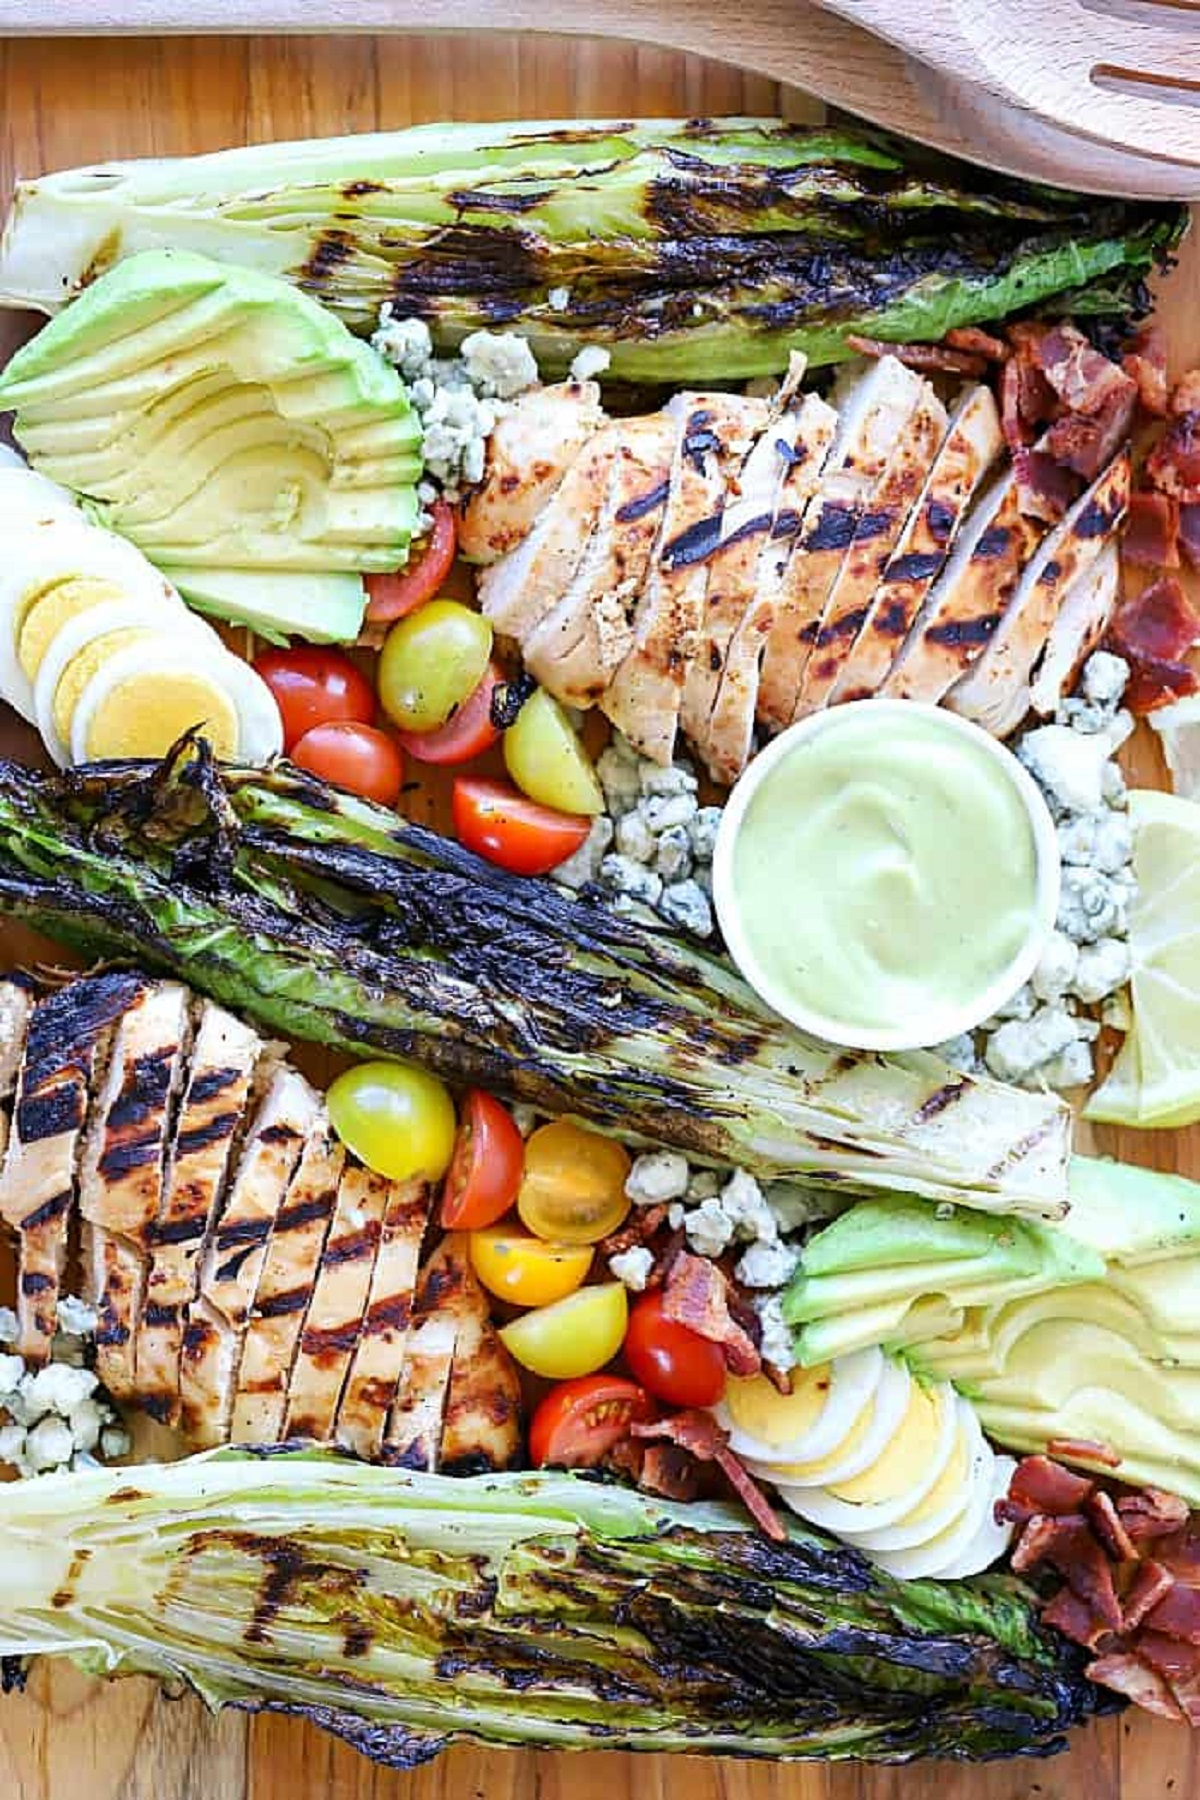 Grilled Cobb salad on a wooden board with a bowl of avocado dressing.